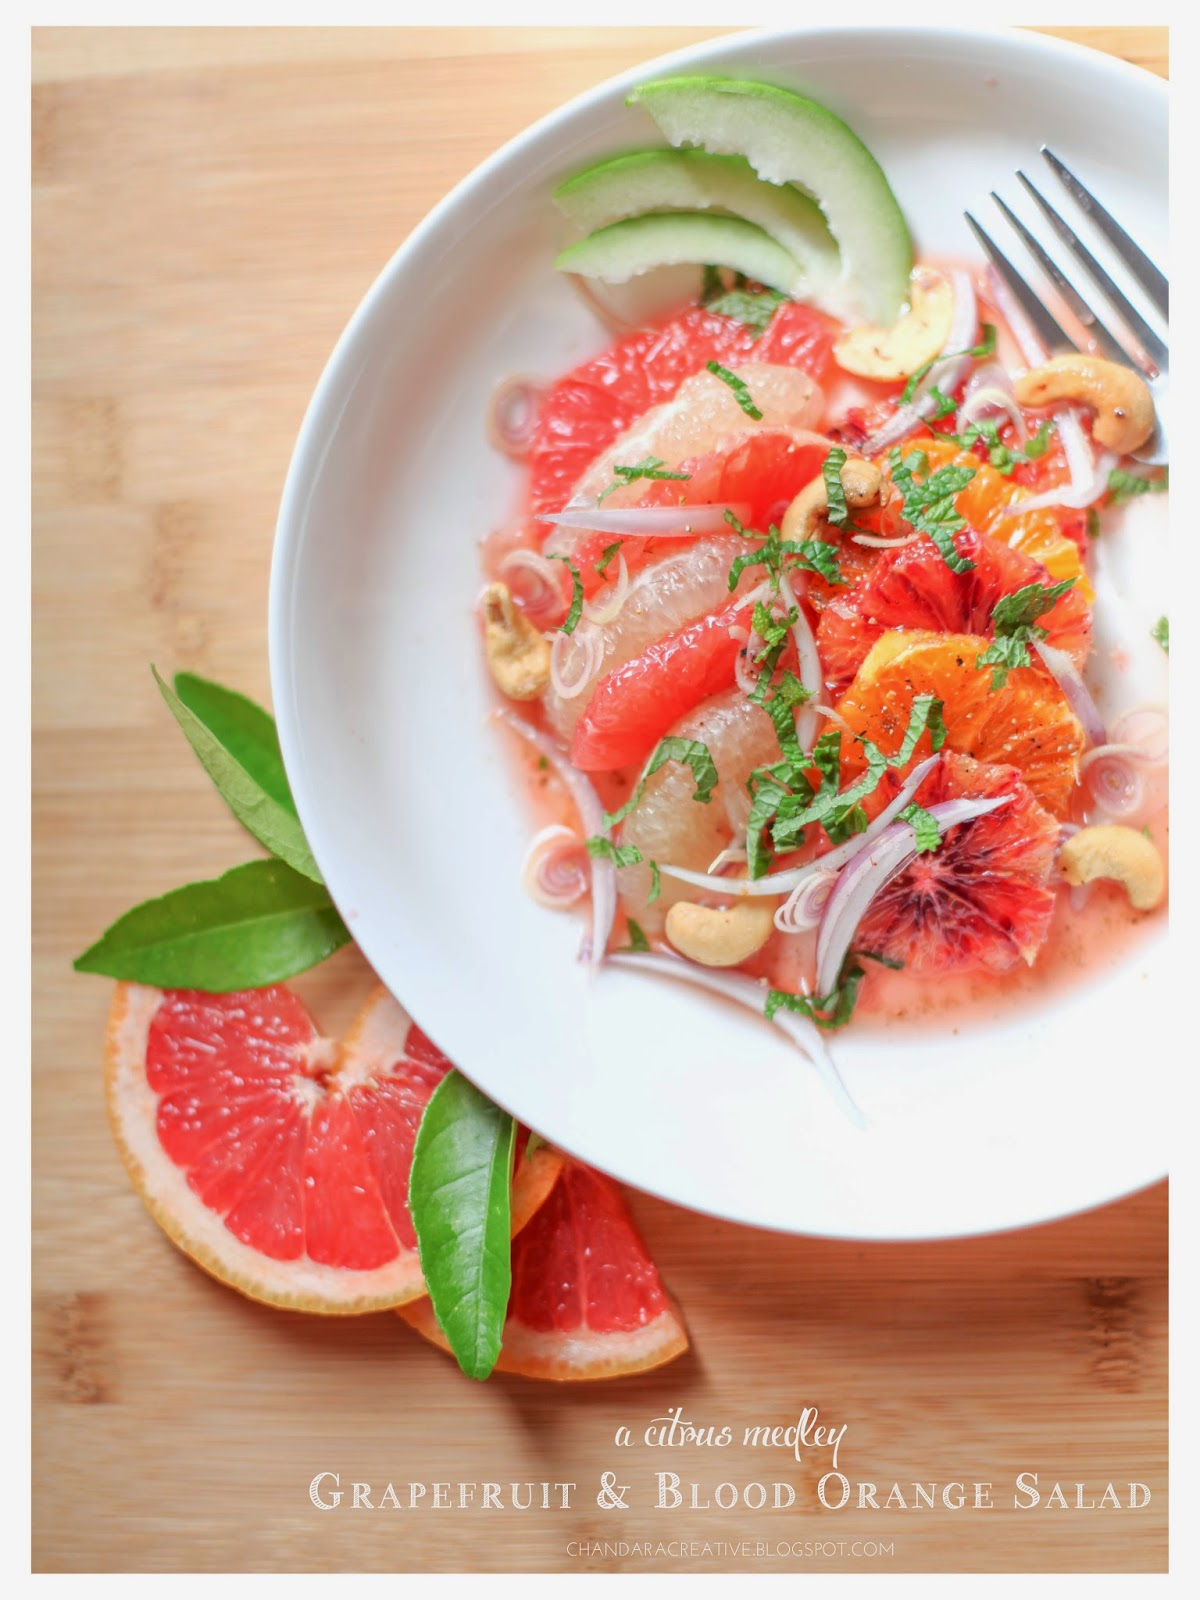 Grapefruit and Blood Orange Salad | via Chandara Creative